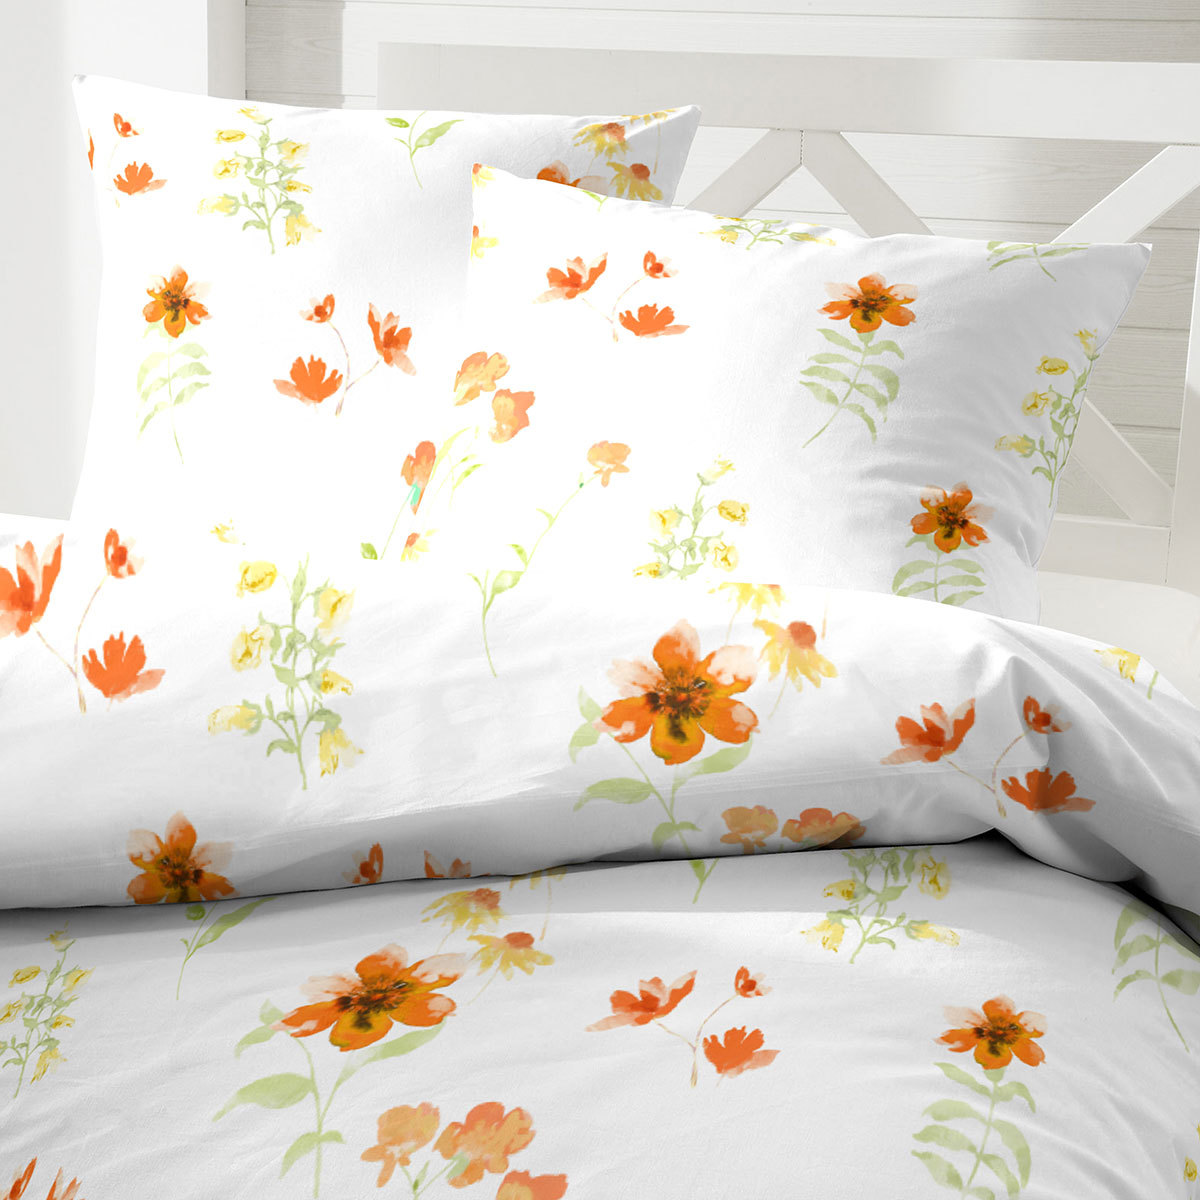 hahn mikrofaser seersucker bettw sche flowers orange g nstig online kaufen bei bettwaren shop. Black Bedroom Furniture Sets. Home Design Ideas